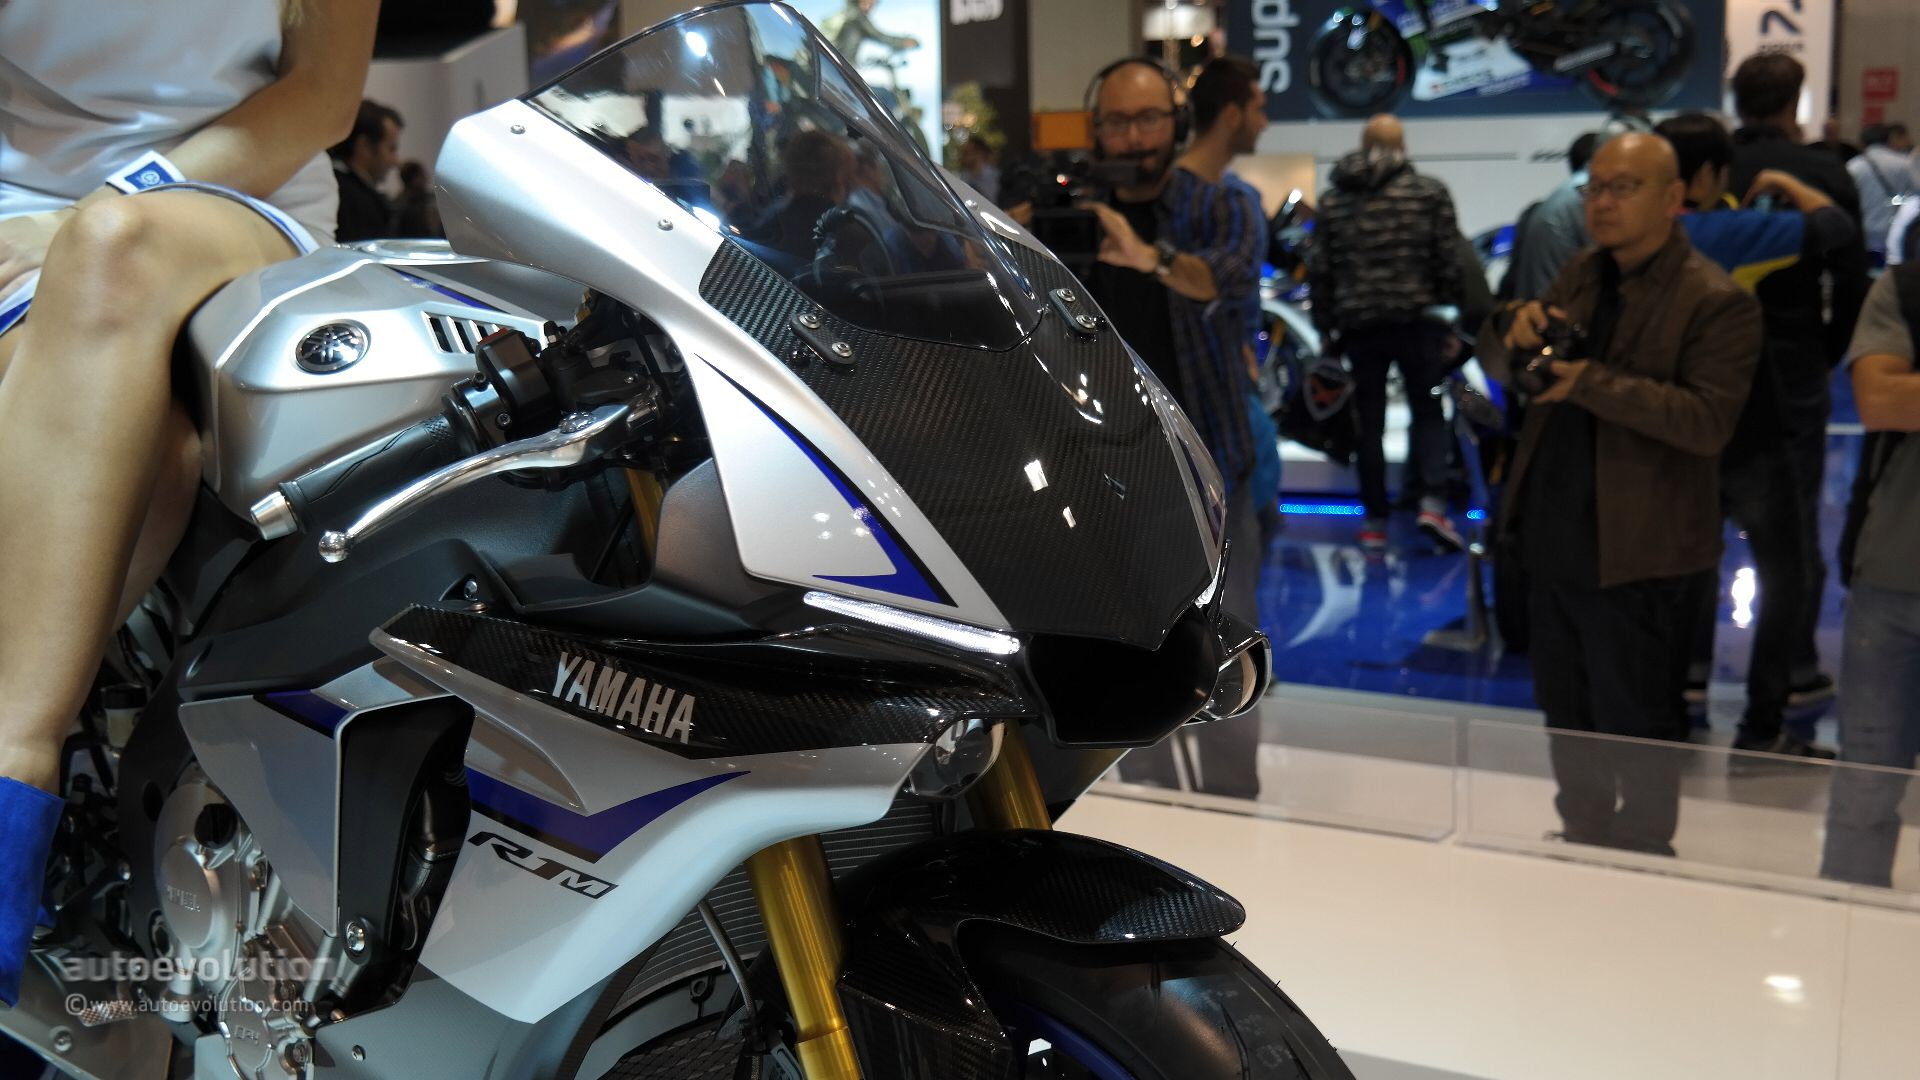 2015 Yamaha YZF R1m Live From EICMA